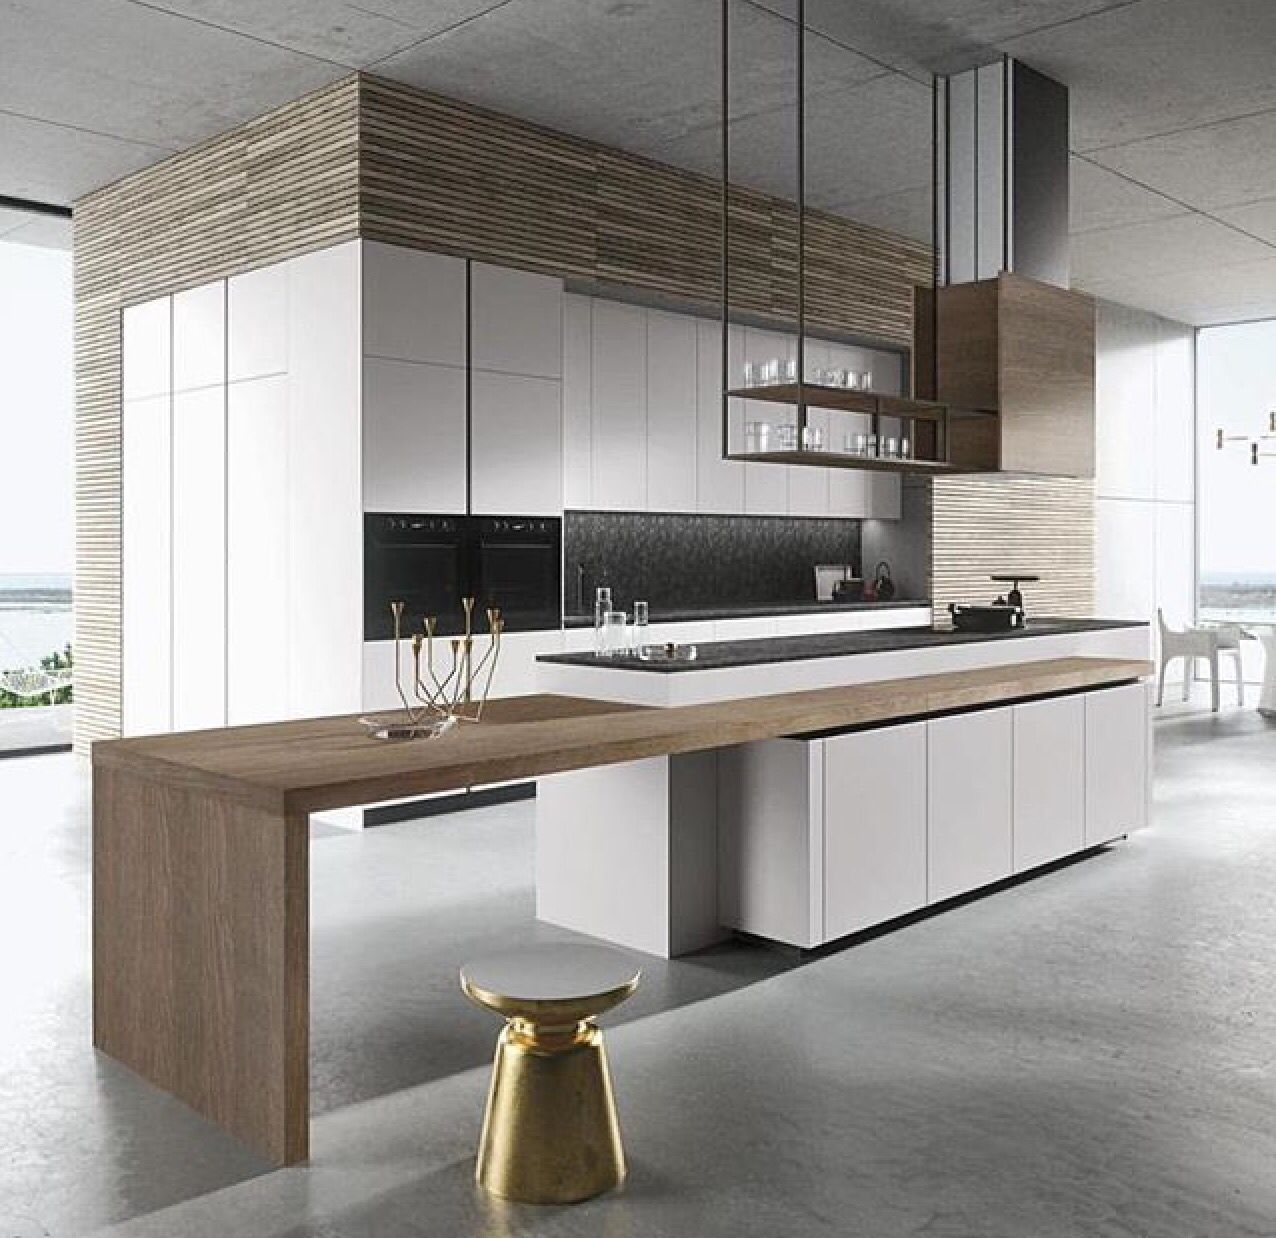 Sleek Kitchen Design: Clean Lines In This Kitchen Design To Create A Sleek